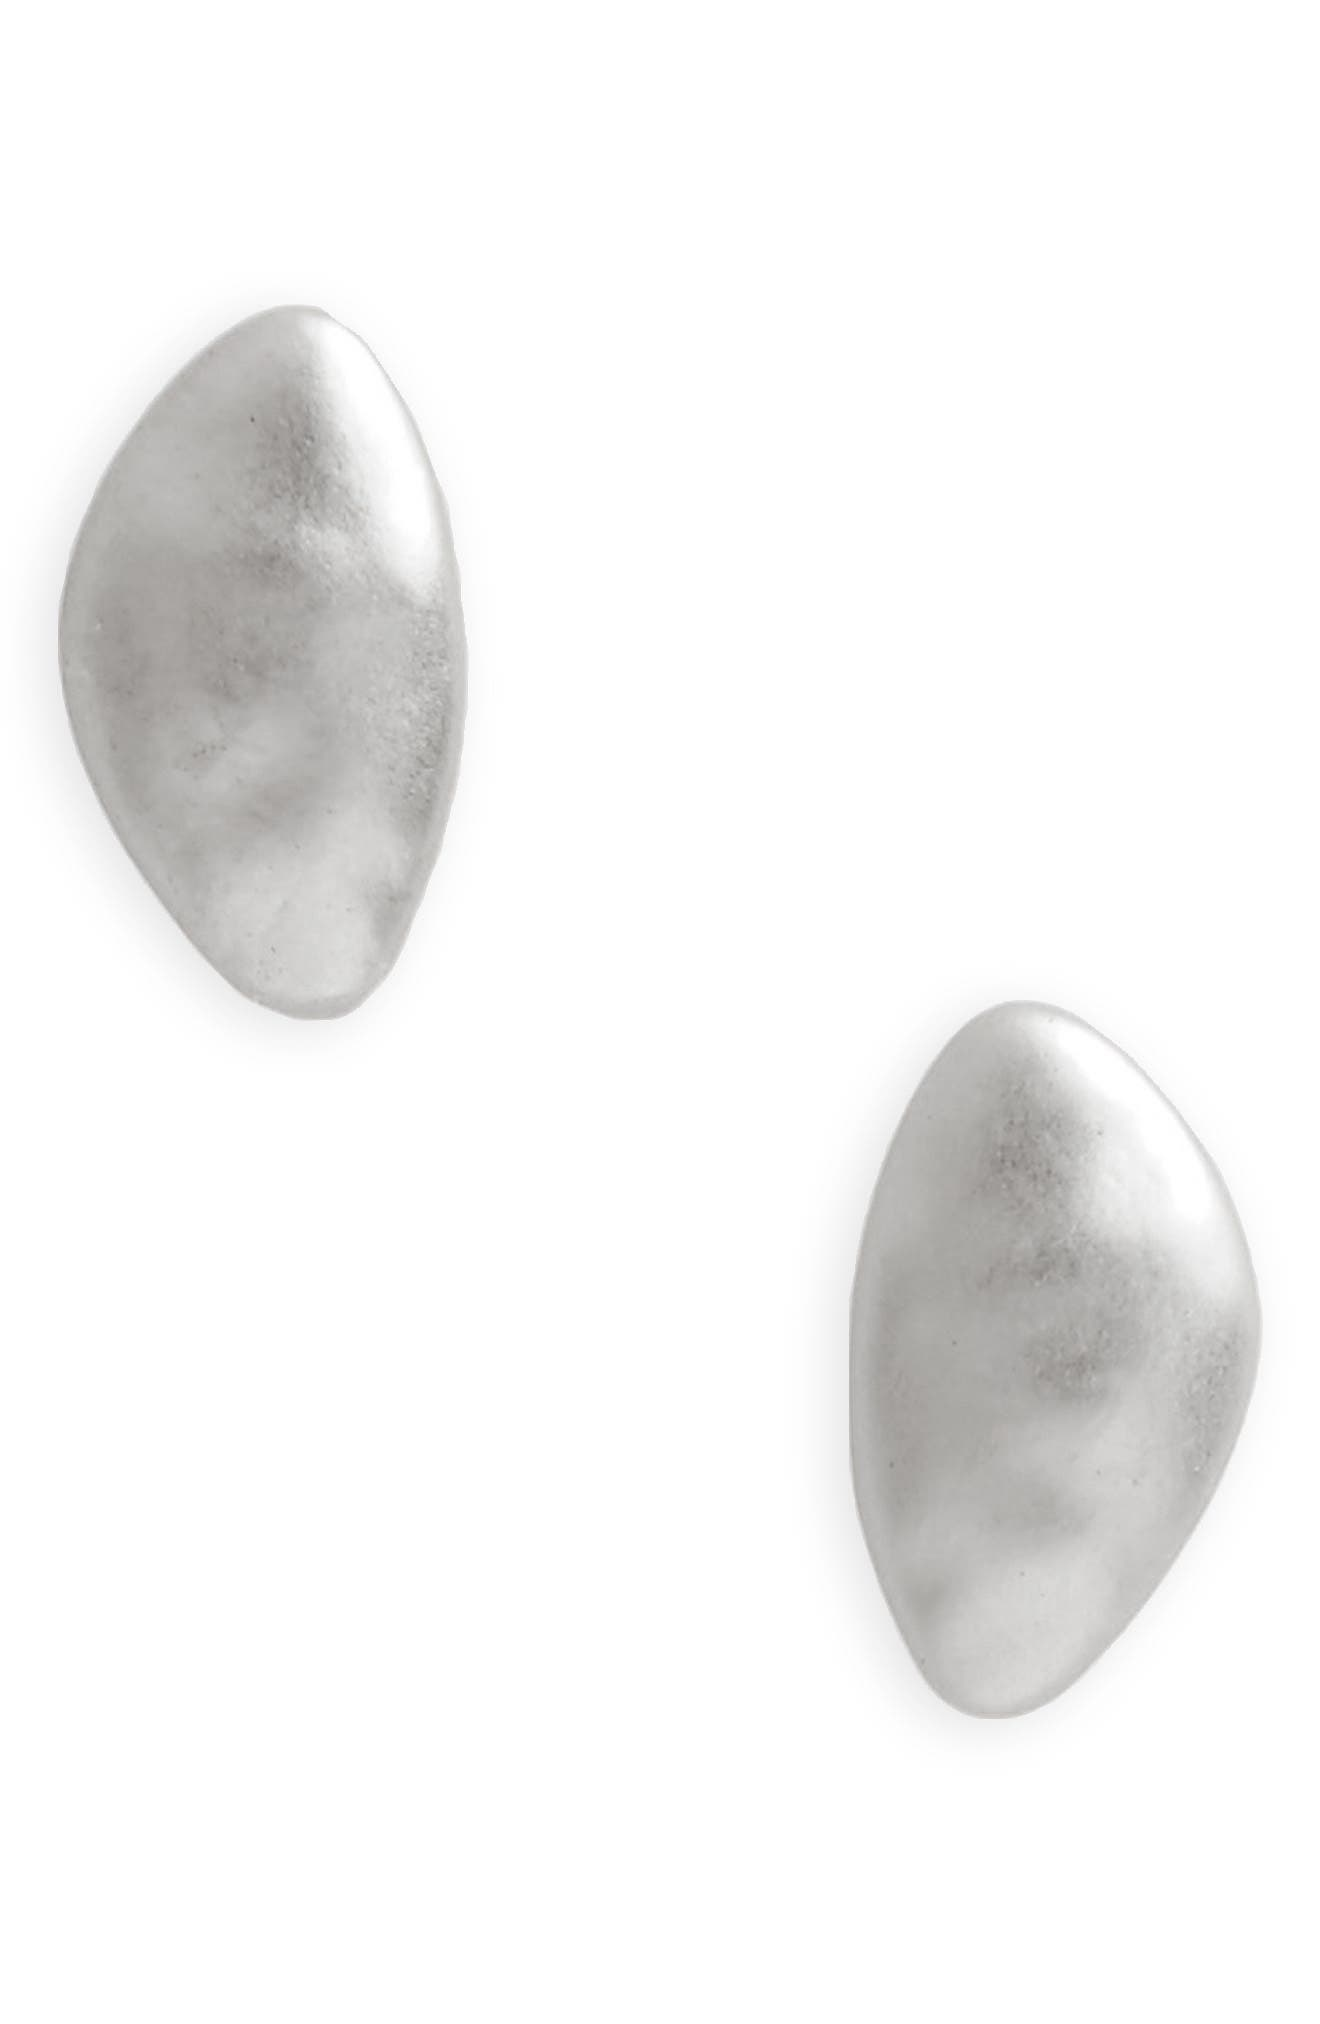 Brushed Metal Stud Earrings,                         Main,                         color, 040